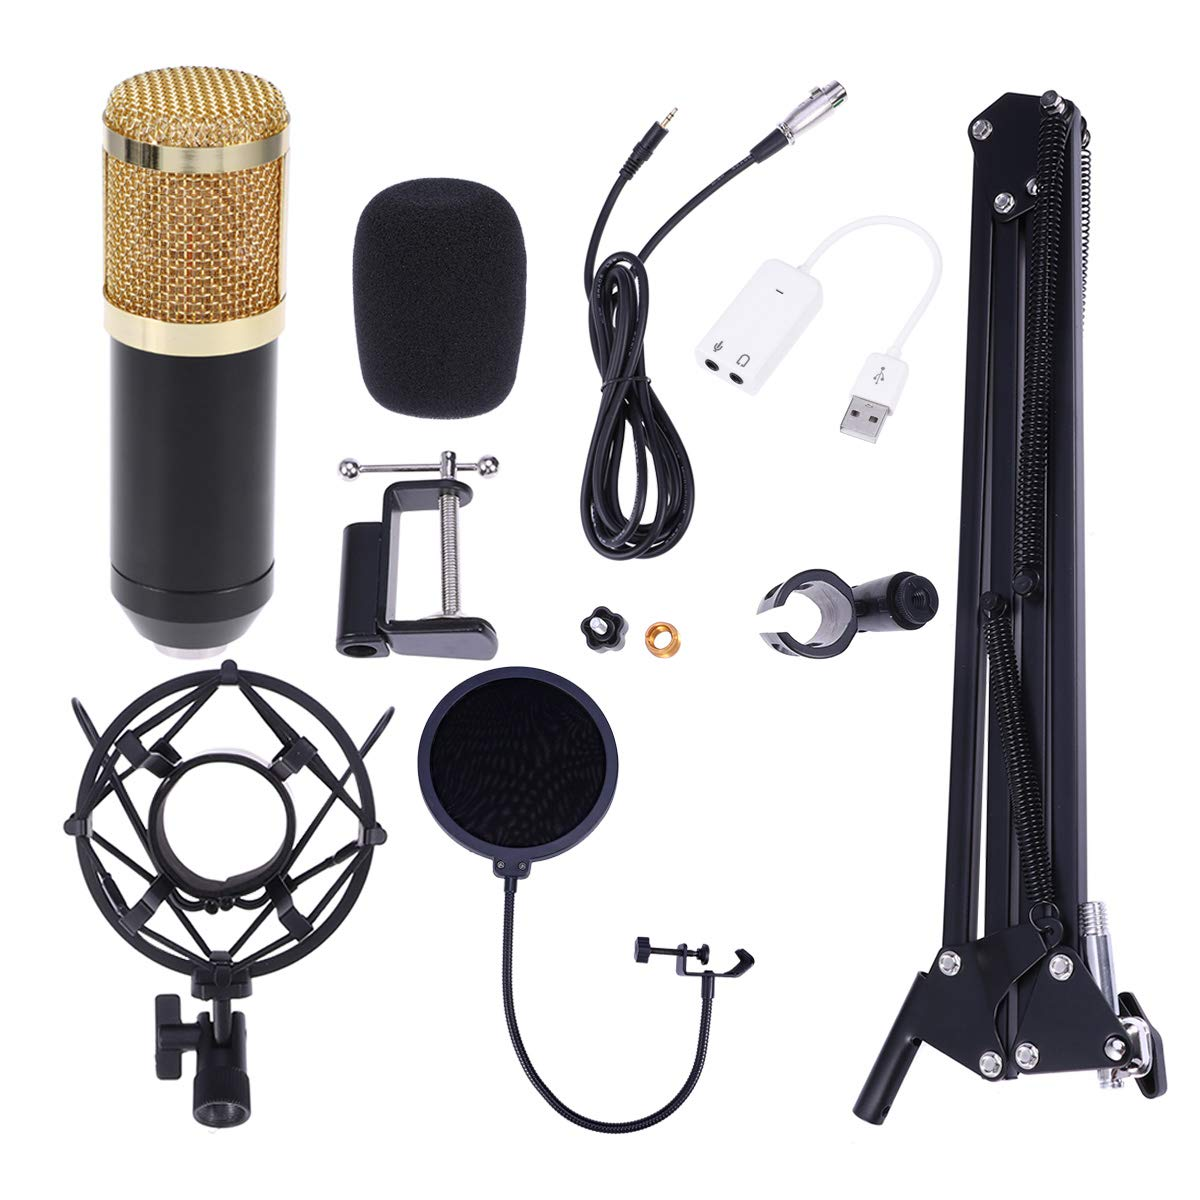 BM-800 Professional Studio Broadcasting Recording Condenser Microphone with Shock Mount Mic Stand Filter XLR - 3.5mm Cable and USB Sound Adapter (Black Gold)